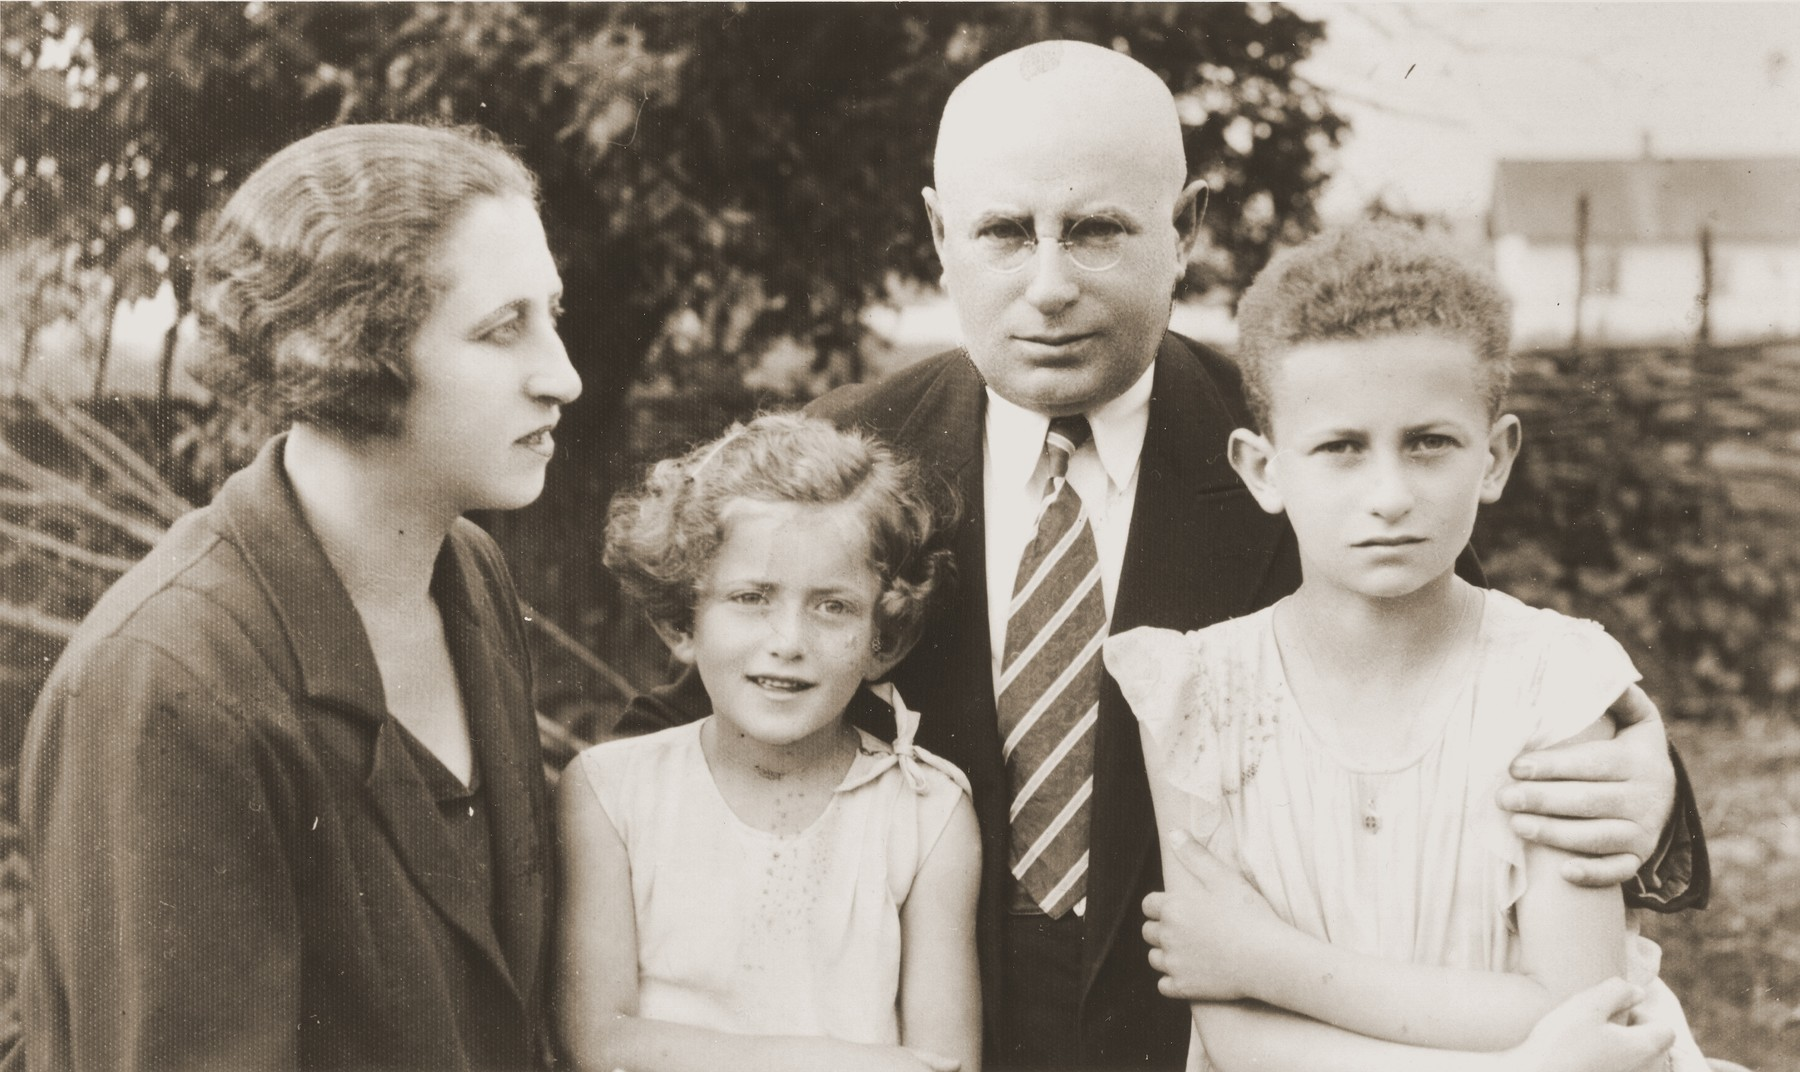 Dolly and Ephraim Neuman with their daughters Beatrice and Erika.